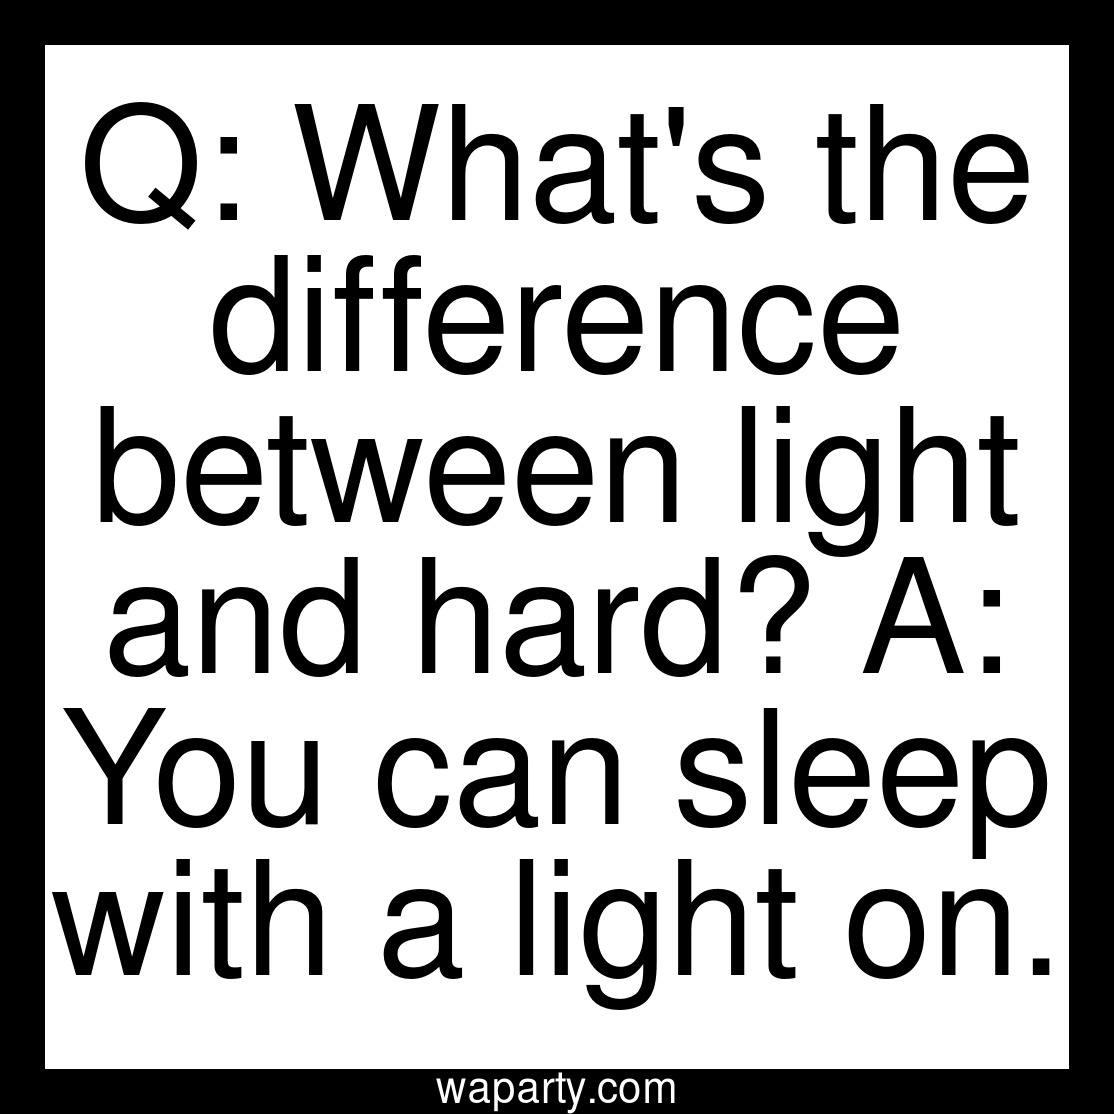 Q: Whats the difference between light and hard? A: You can sleep with a light on.